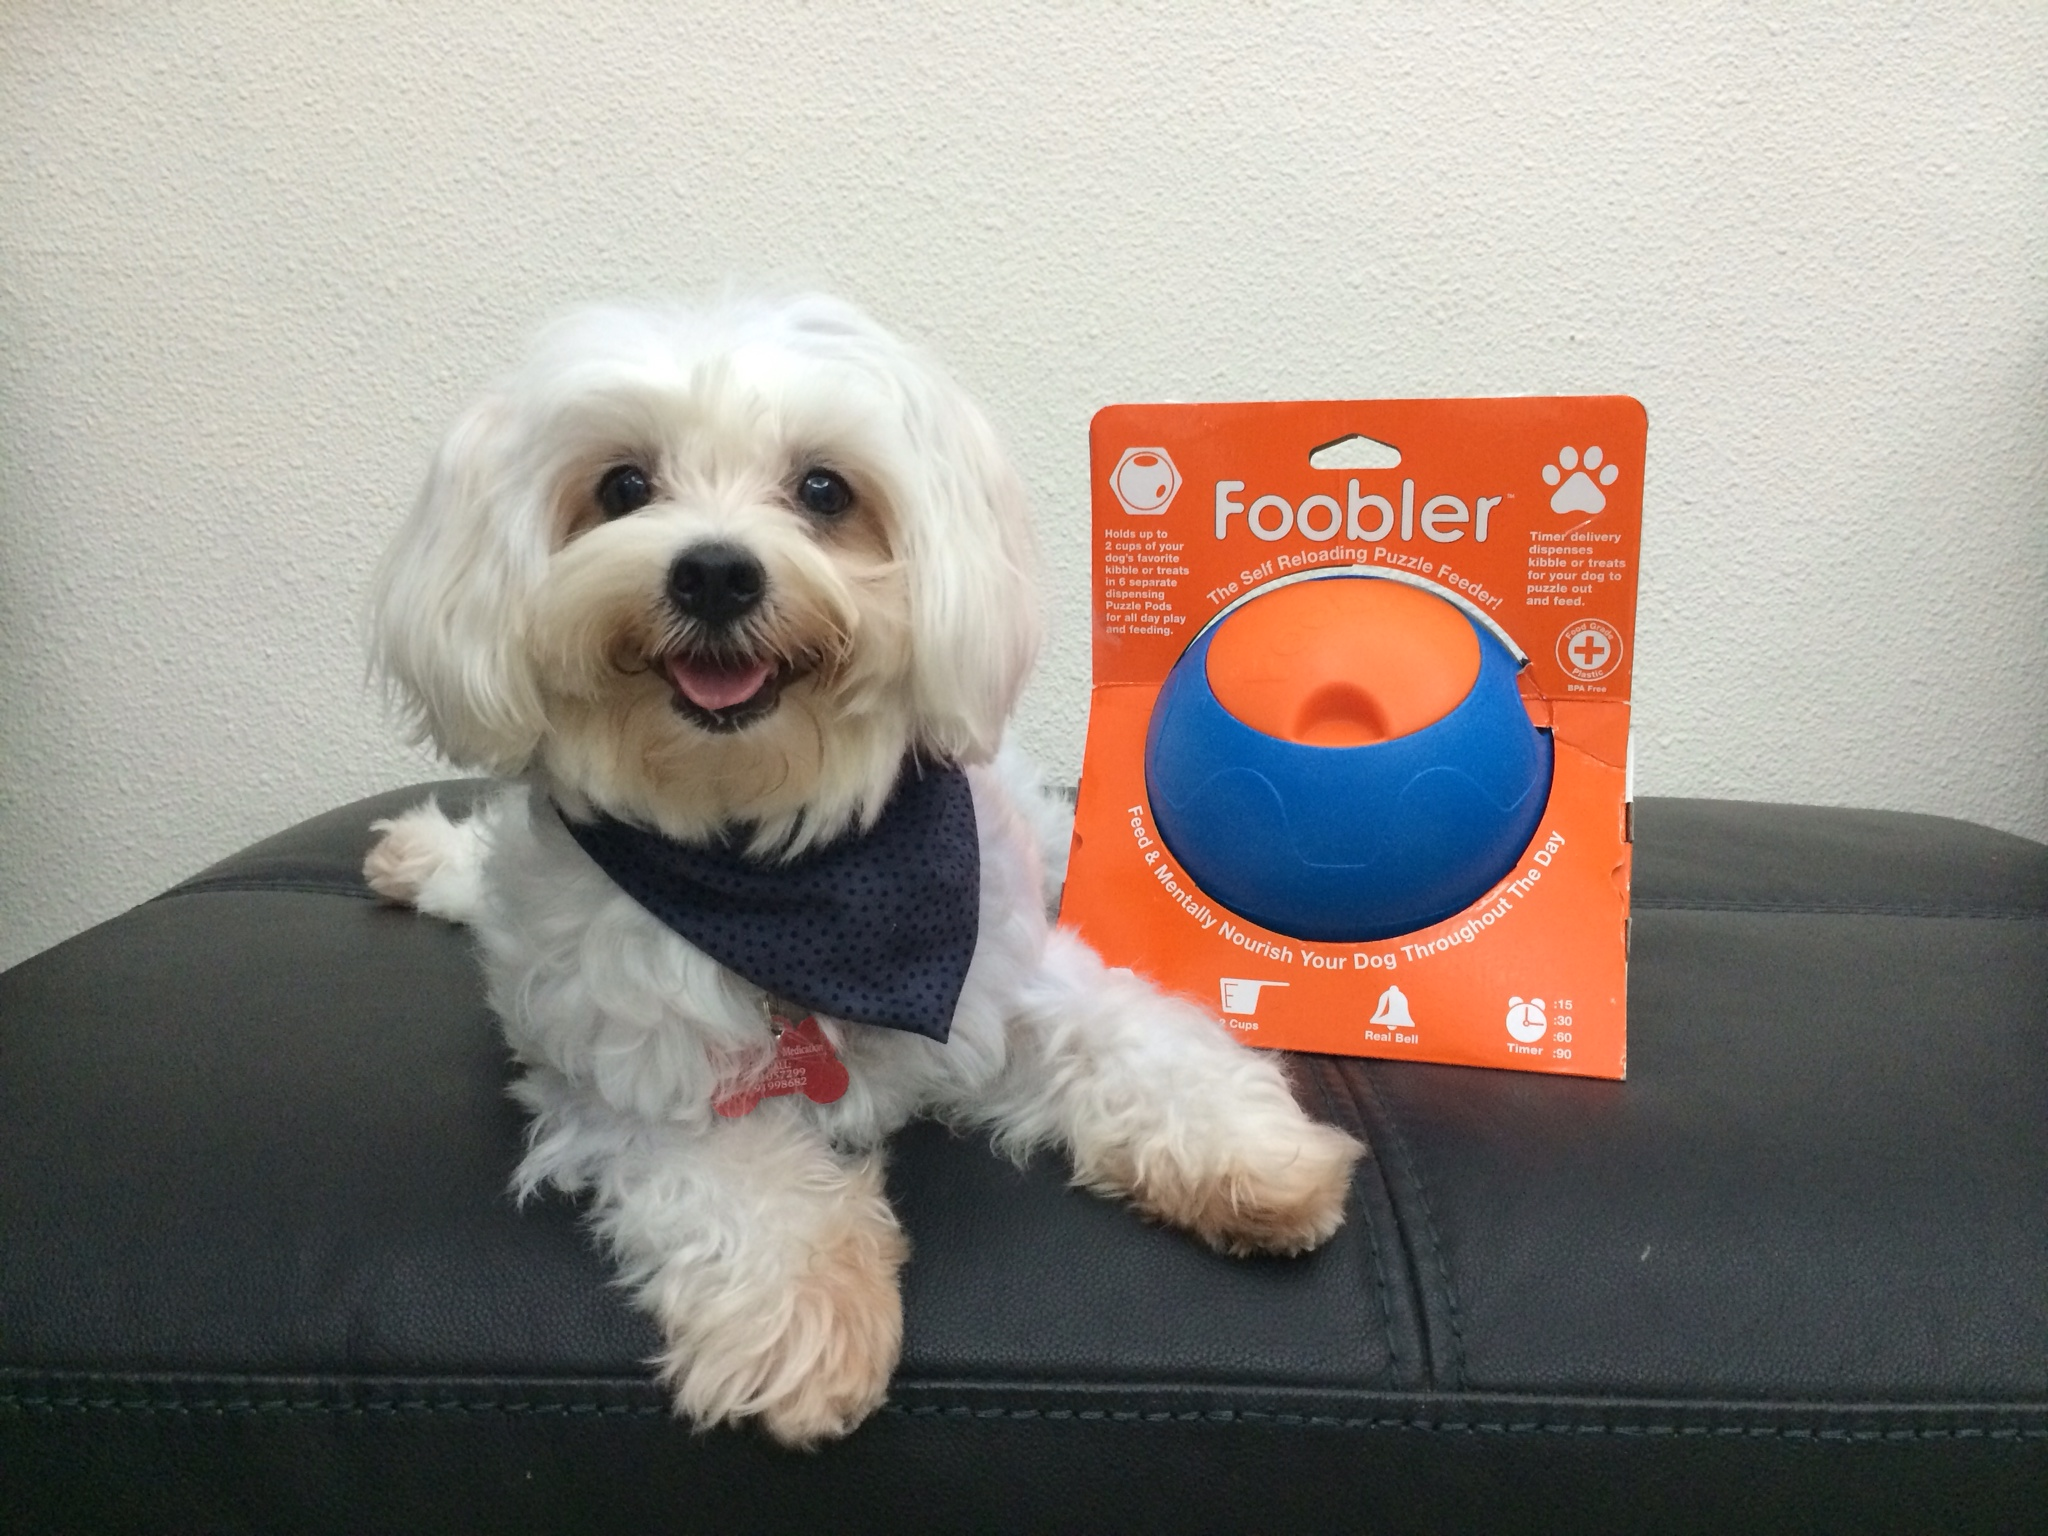 The Foobler Reviewed